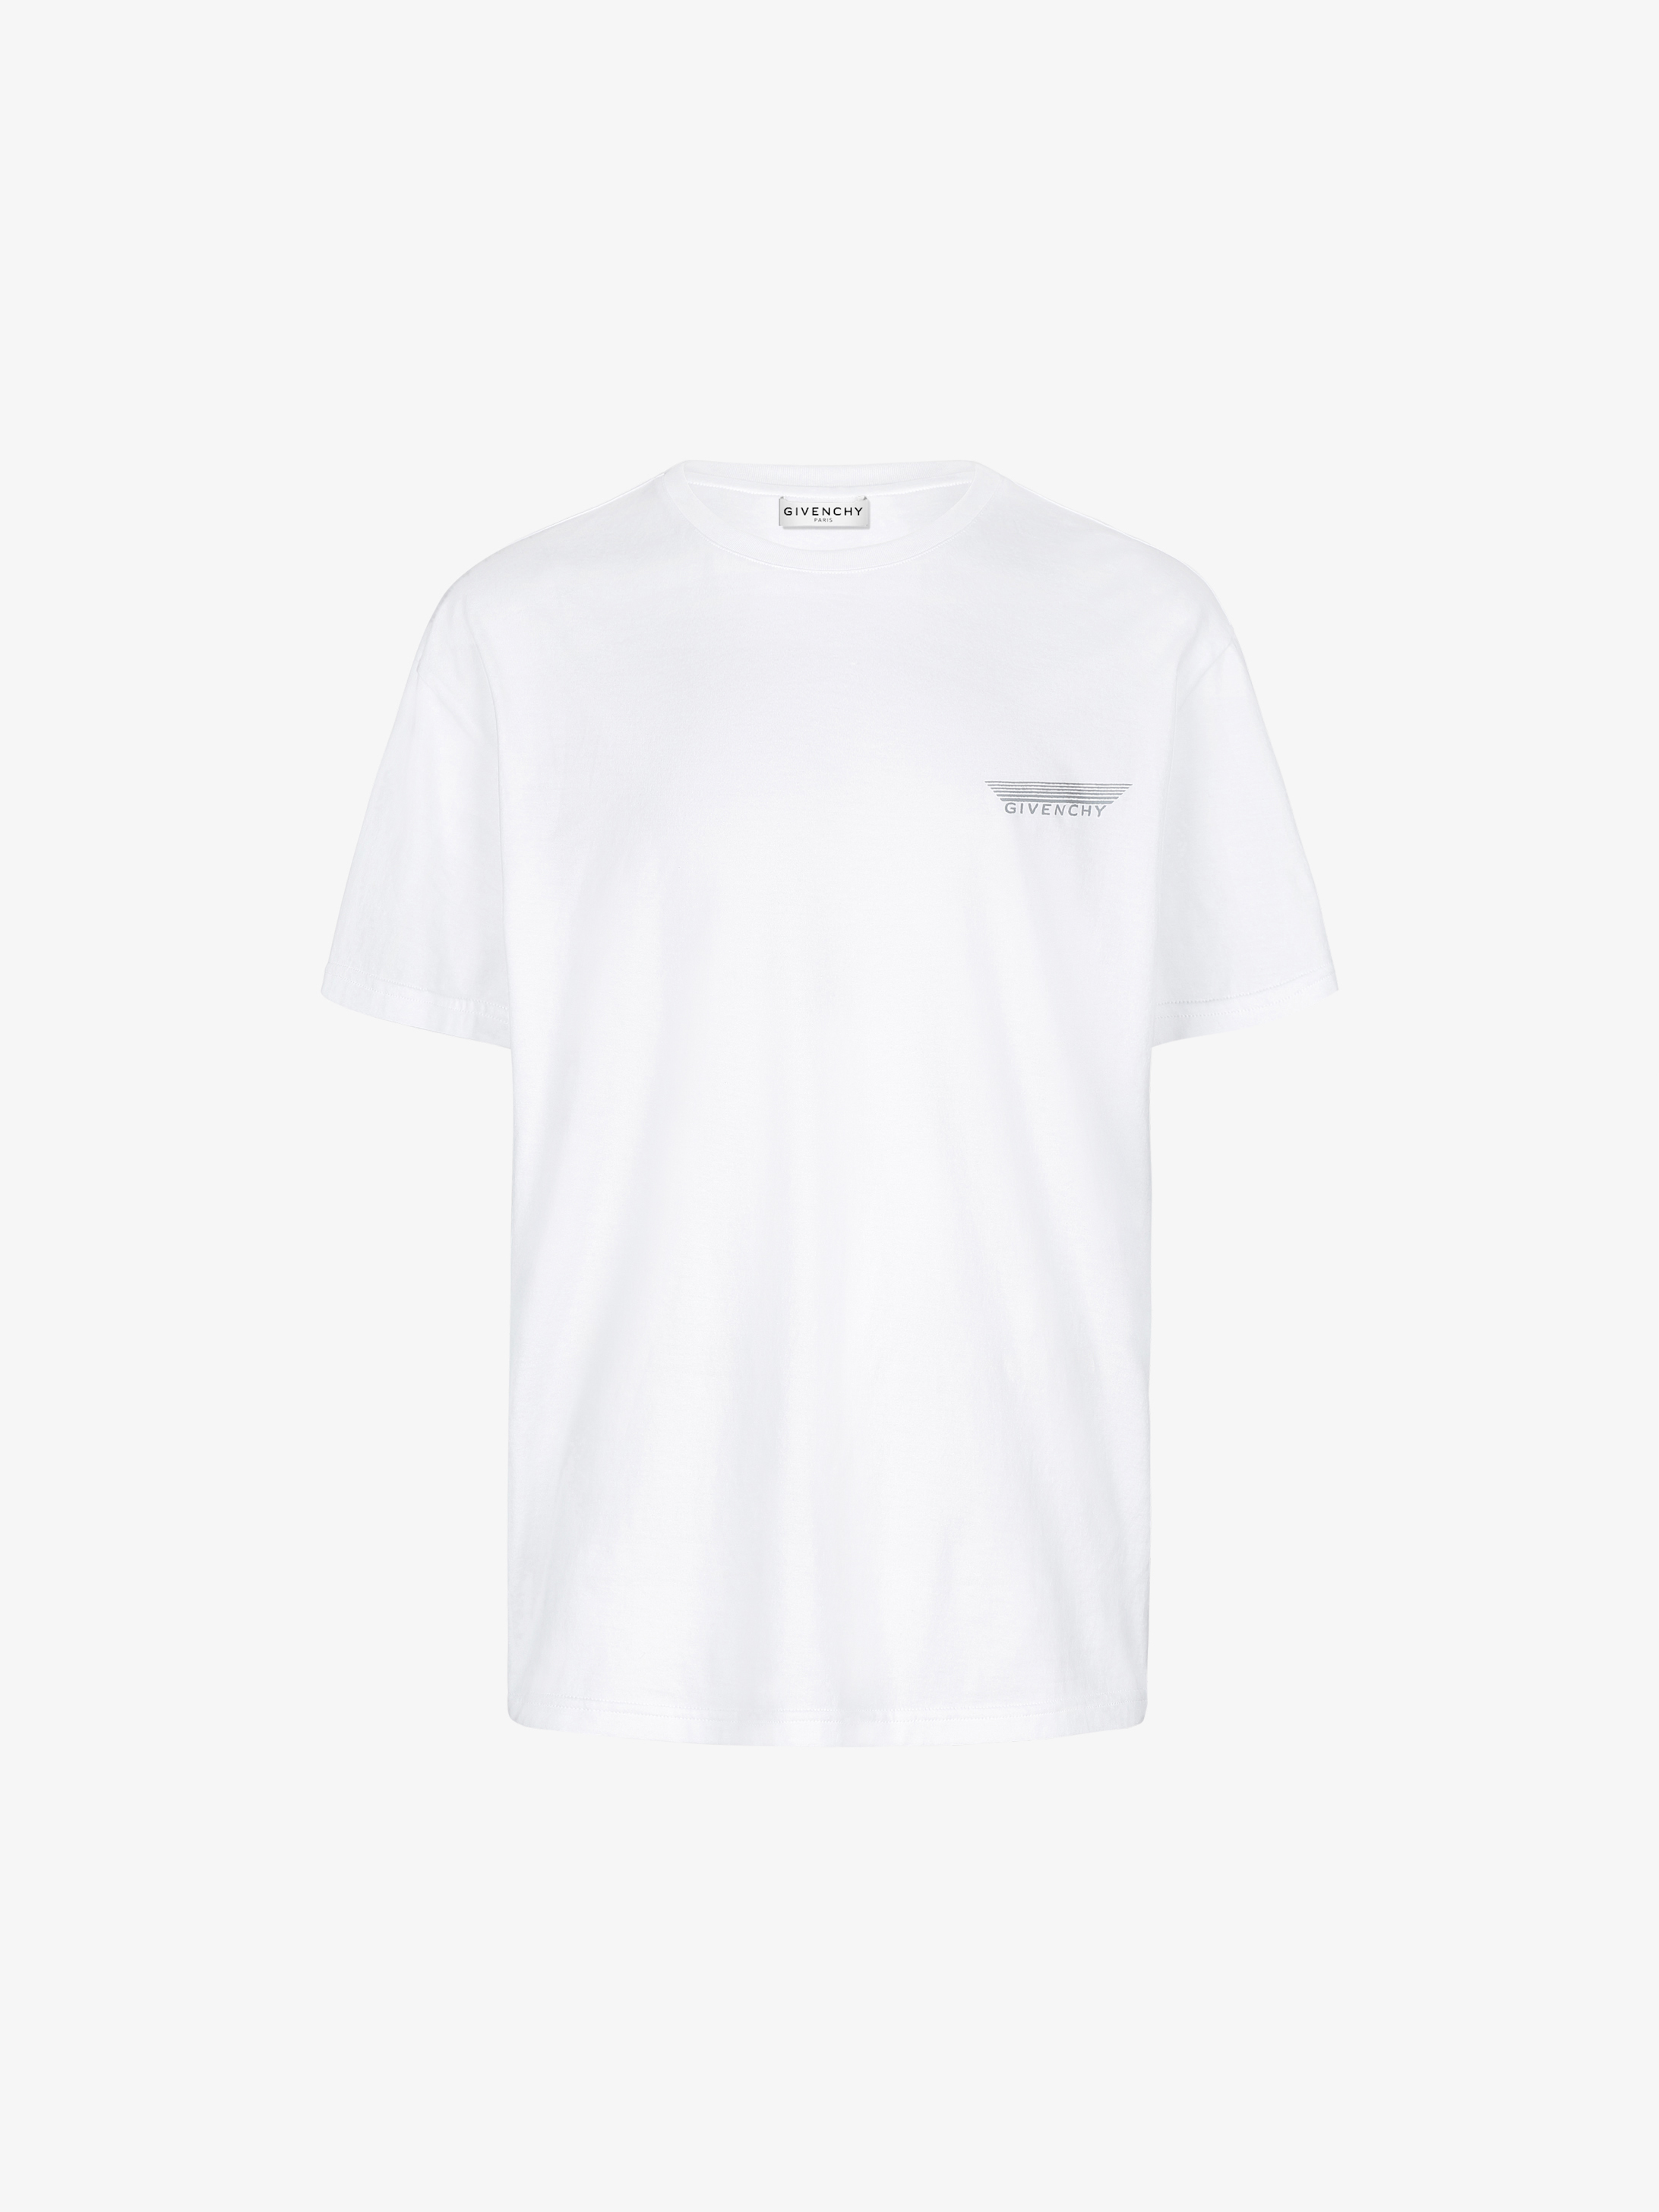 T-shirt con strisce GIVENCHY riflettenti